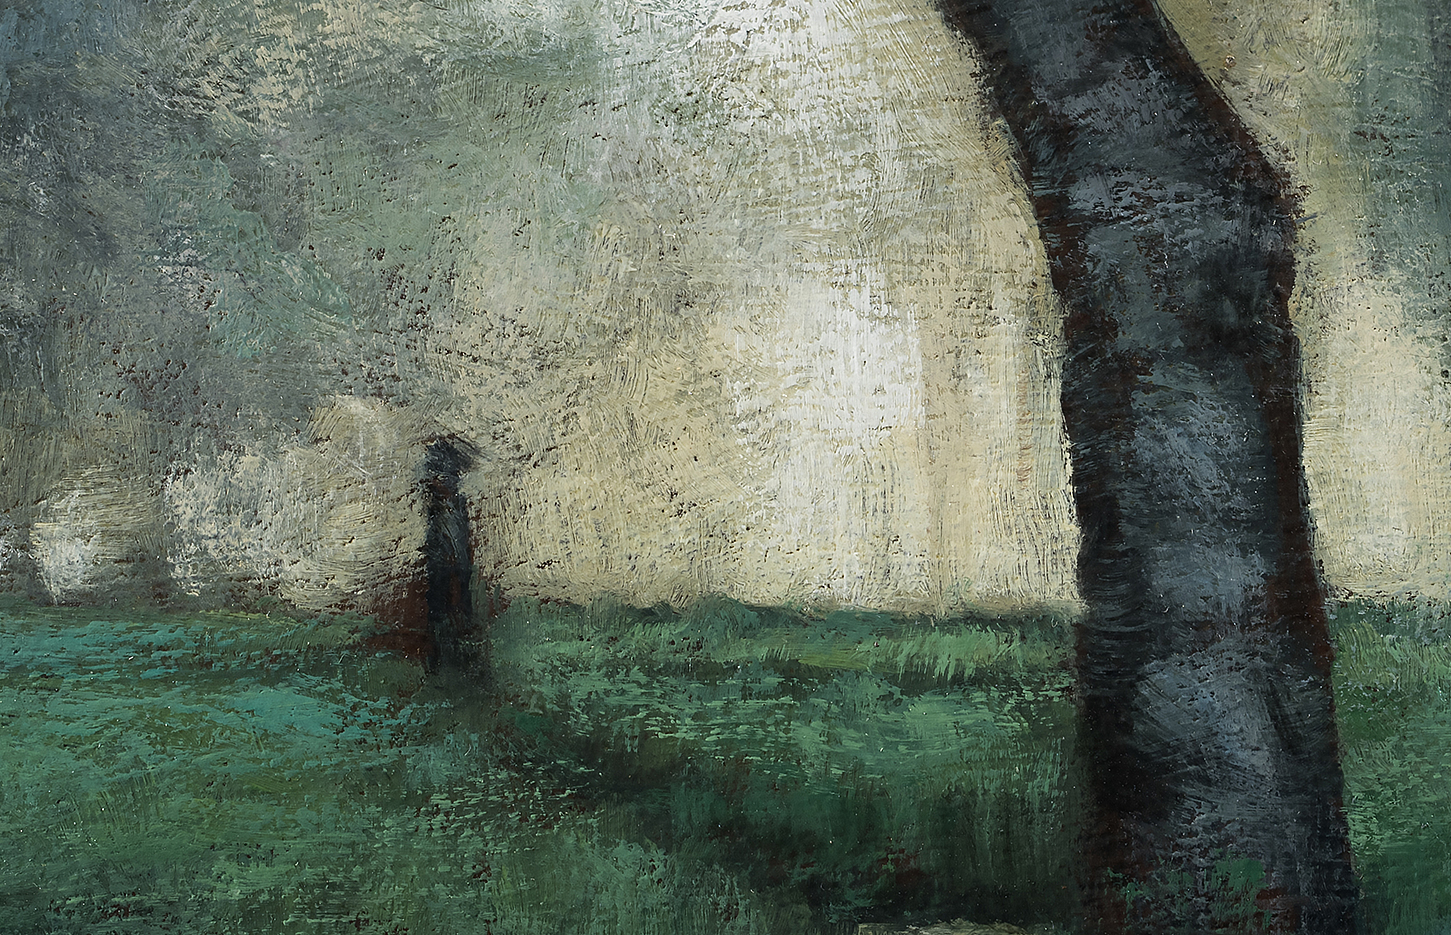 Study after George Inness the Trout Brook by M Francis McCarthy (detail)